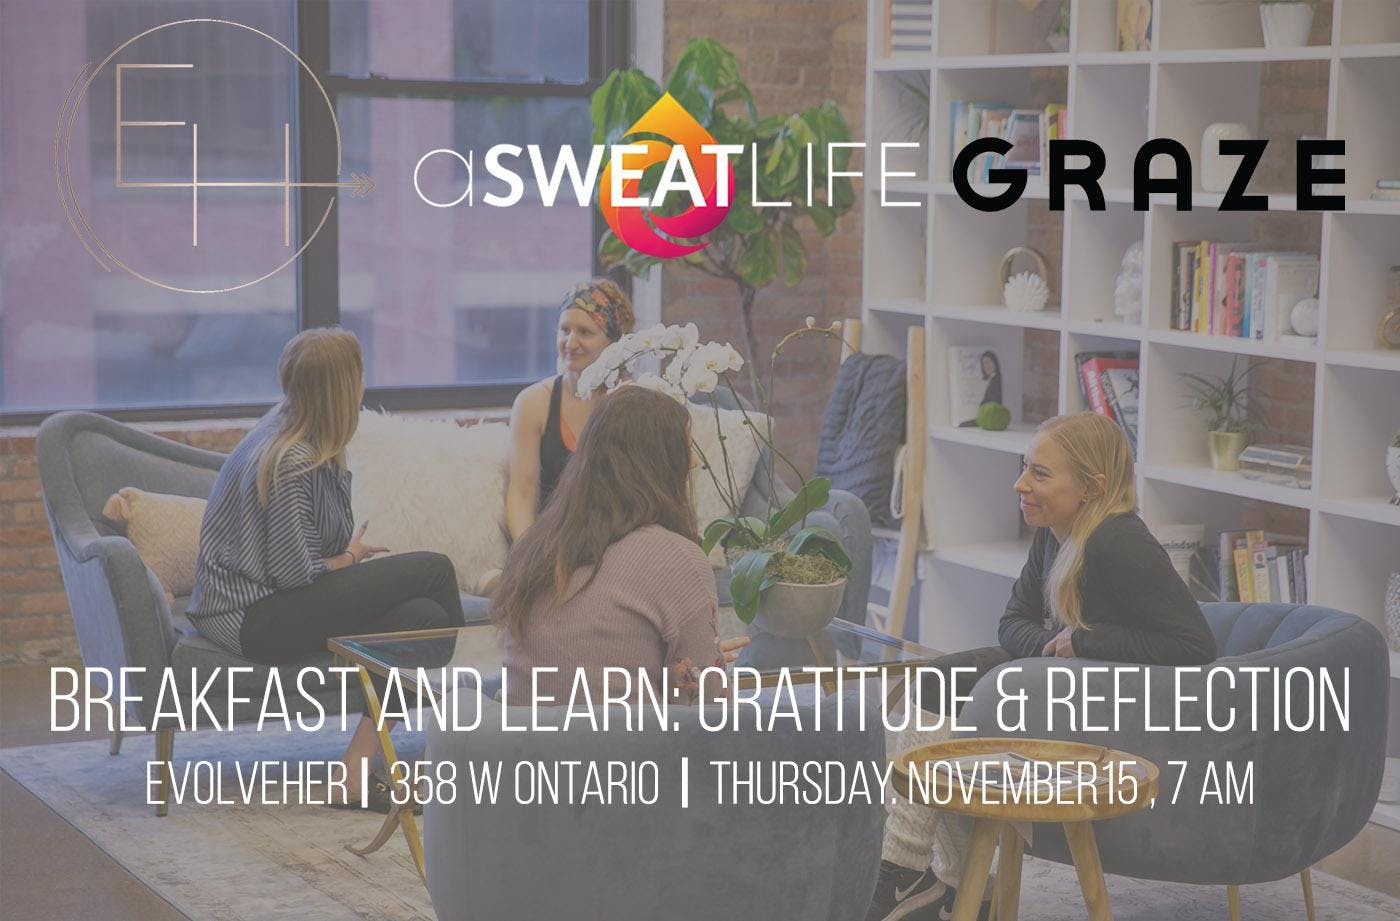 Gratitude and Reflection: A Breakfast-and-Lea